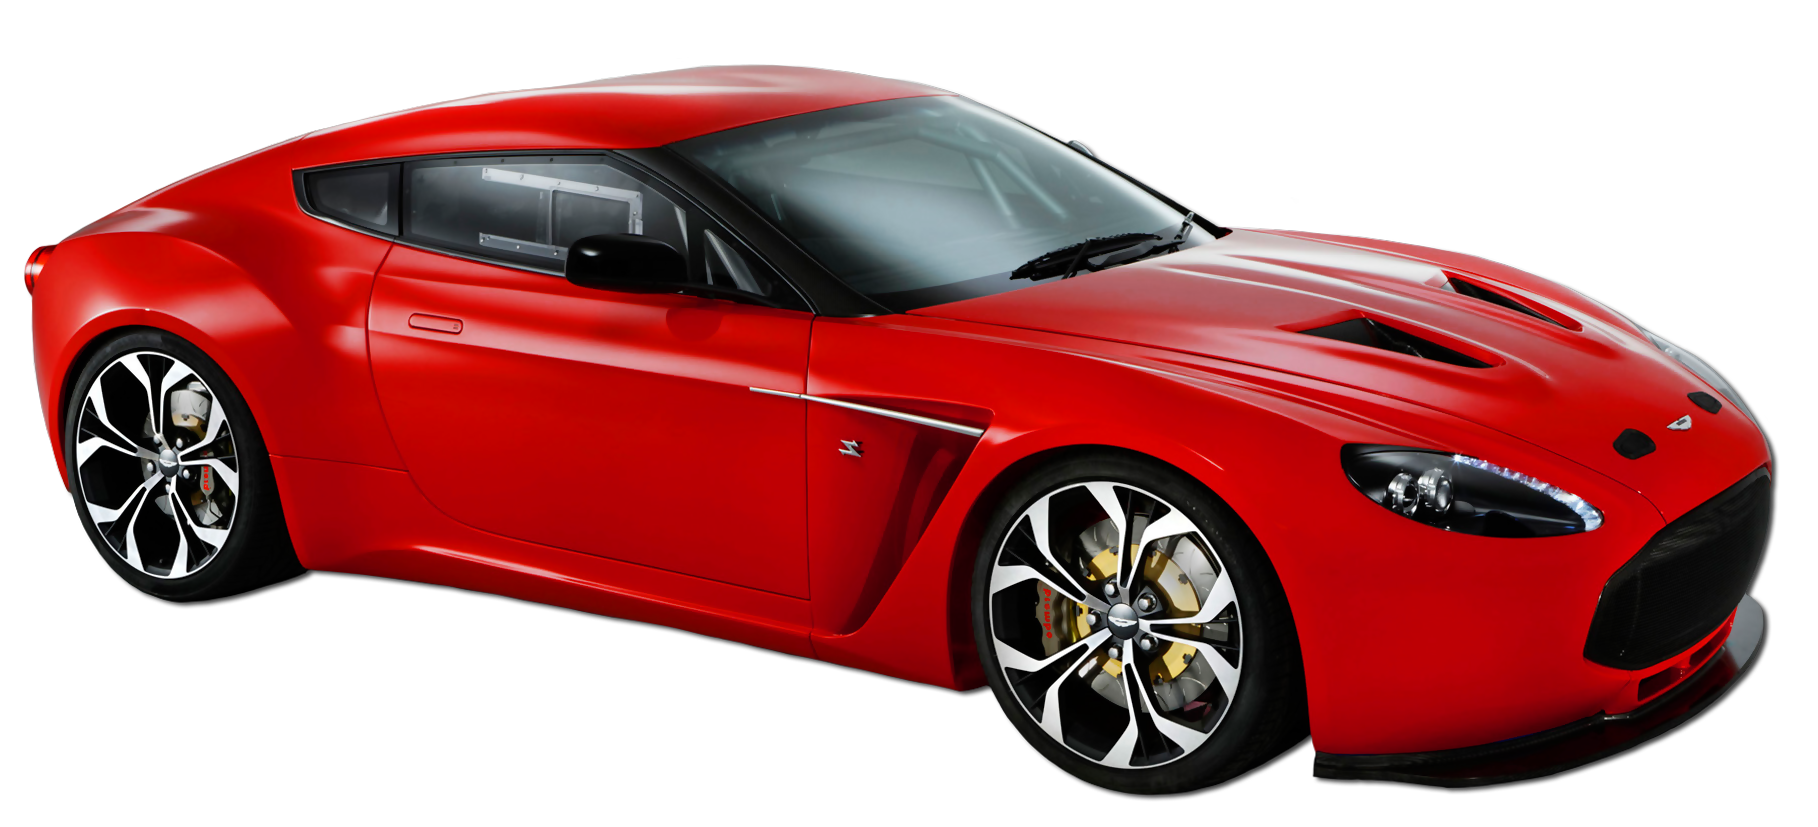 Clipart car sport. Sports neoteric ideas aston